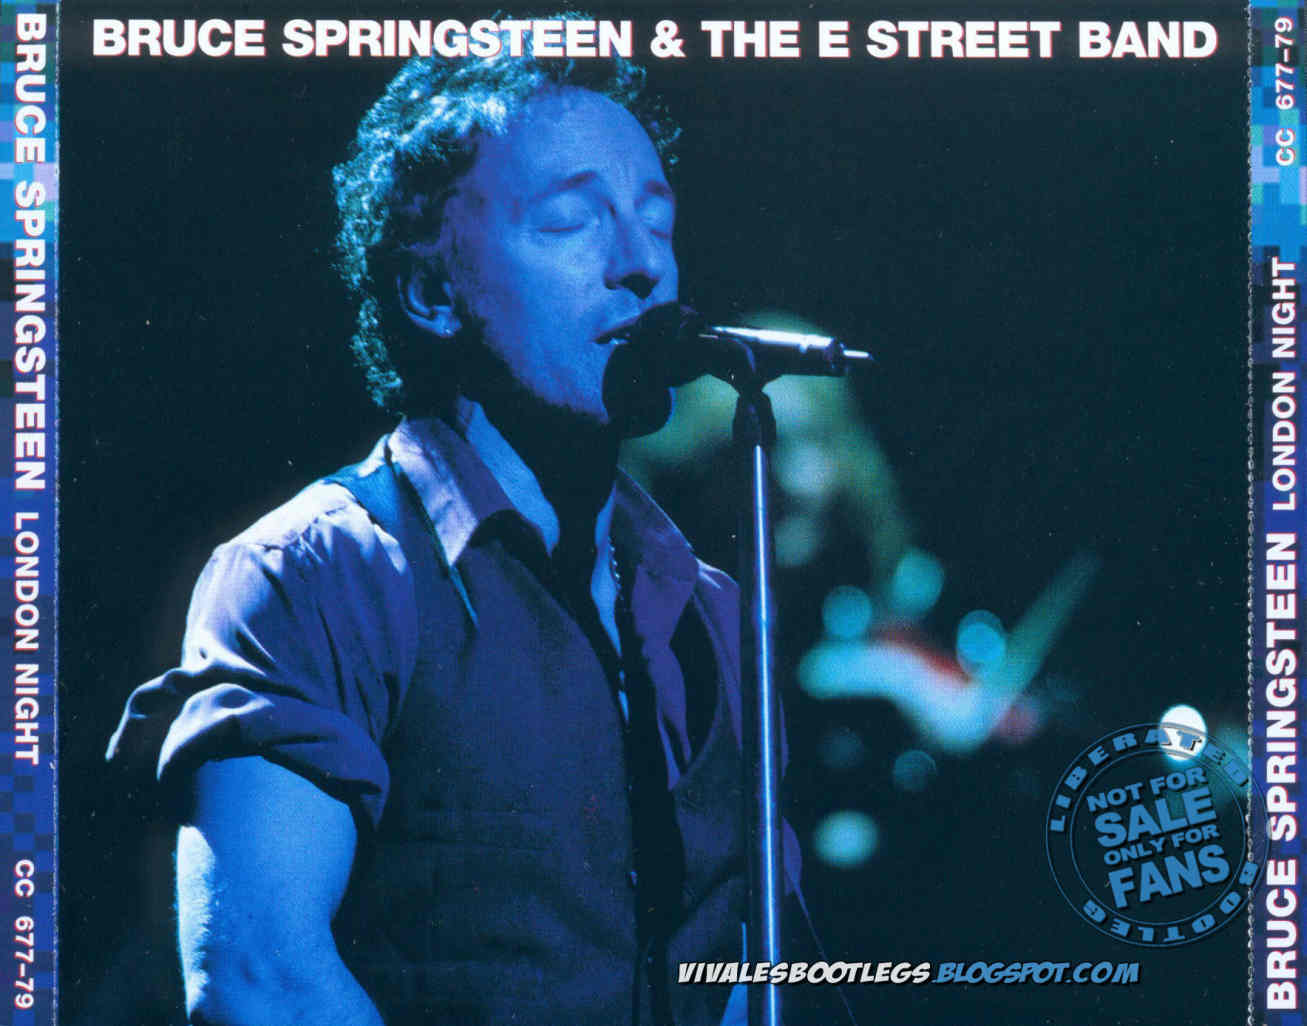 Bruce Springsteen: London Night. Wembley Arena, London, England 2002.